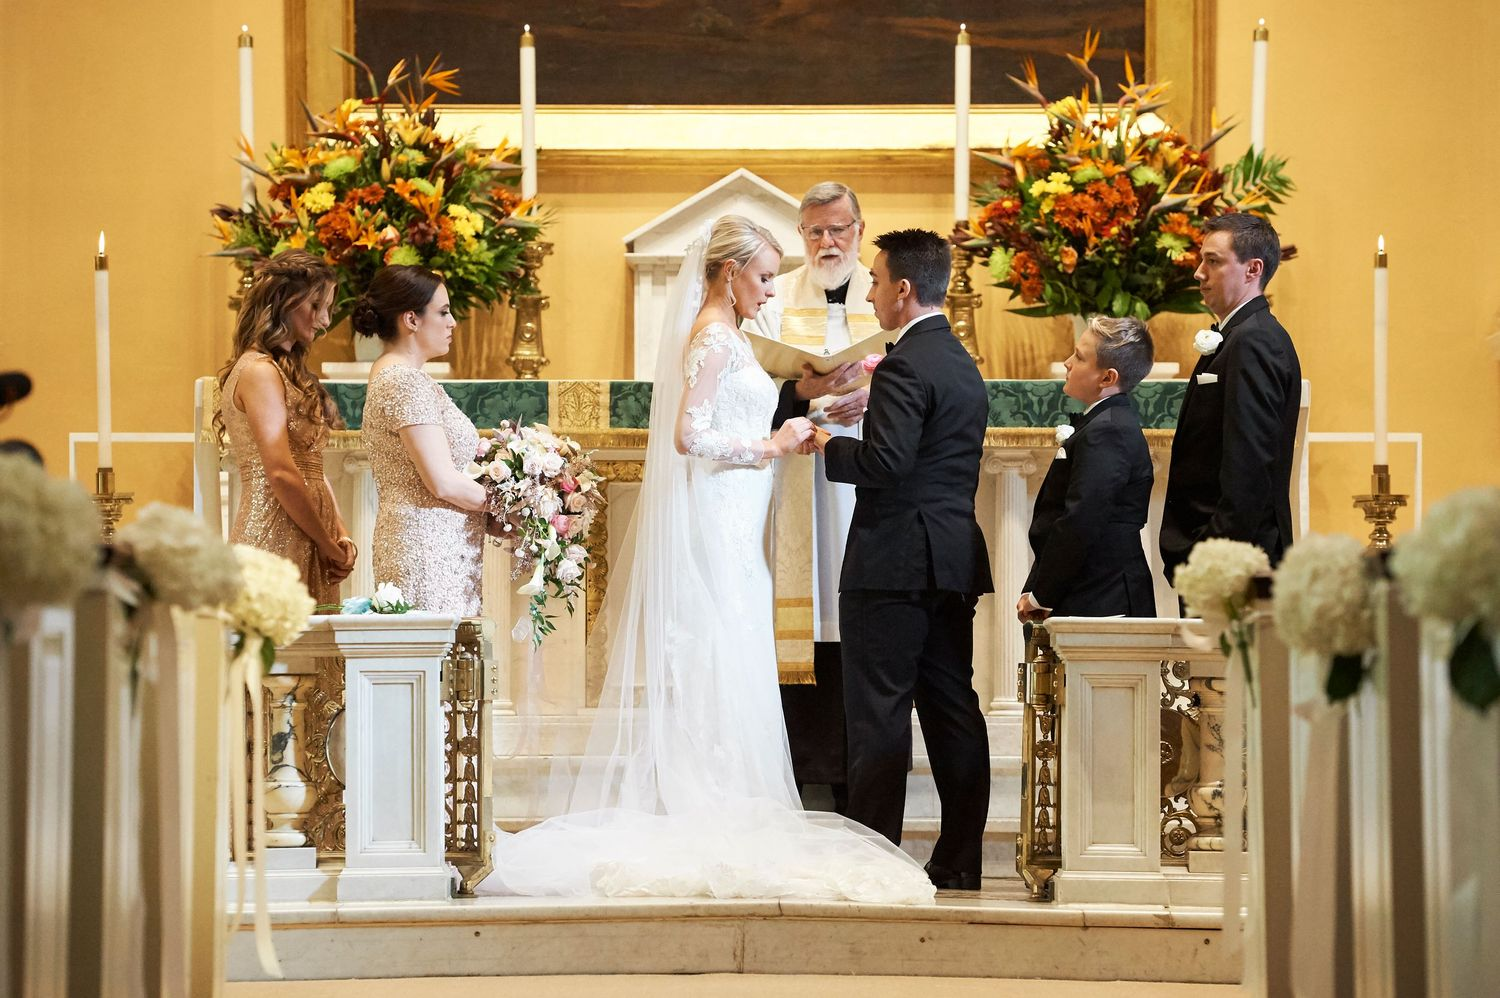 bride placing ring on groom's hand at Old St. Joseph's church in Philadelphia wedding photo